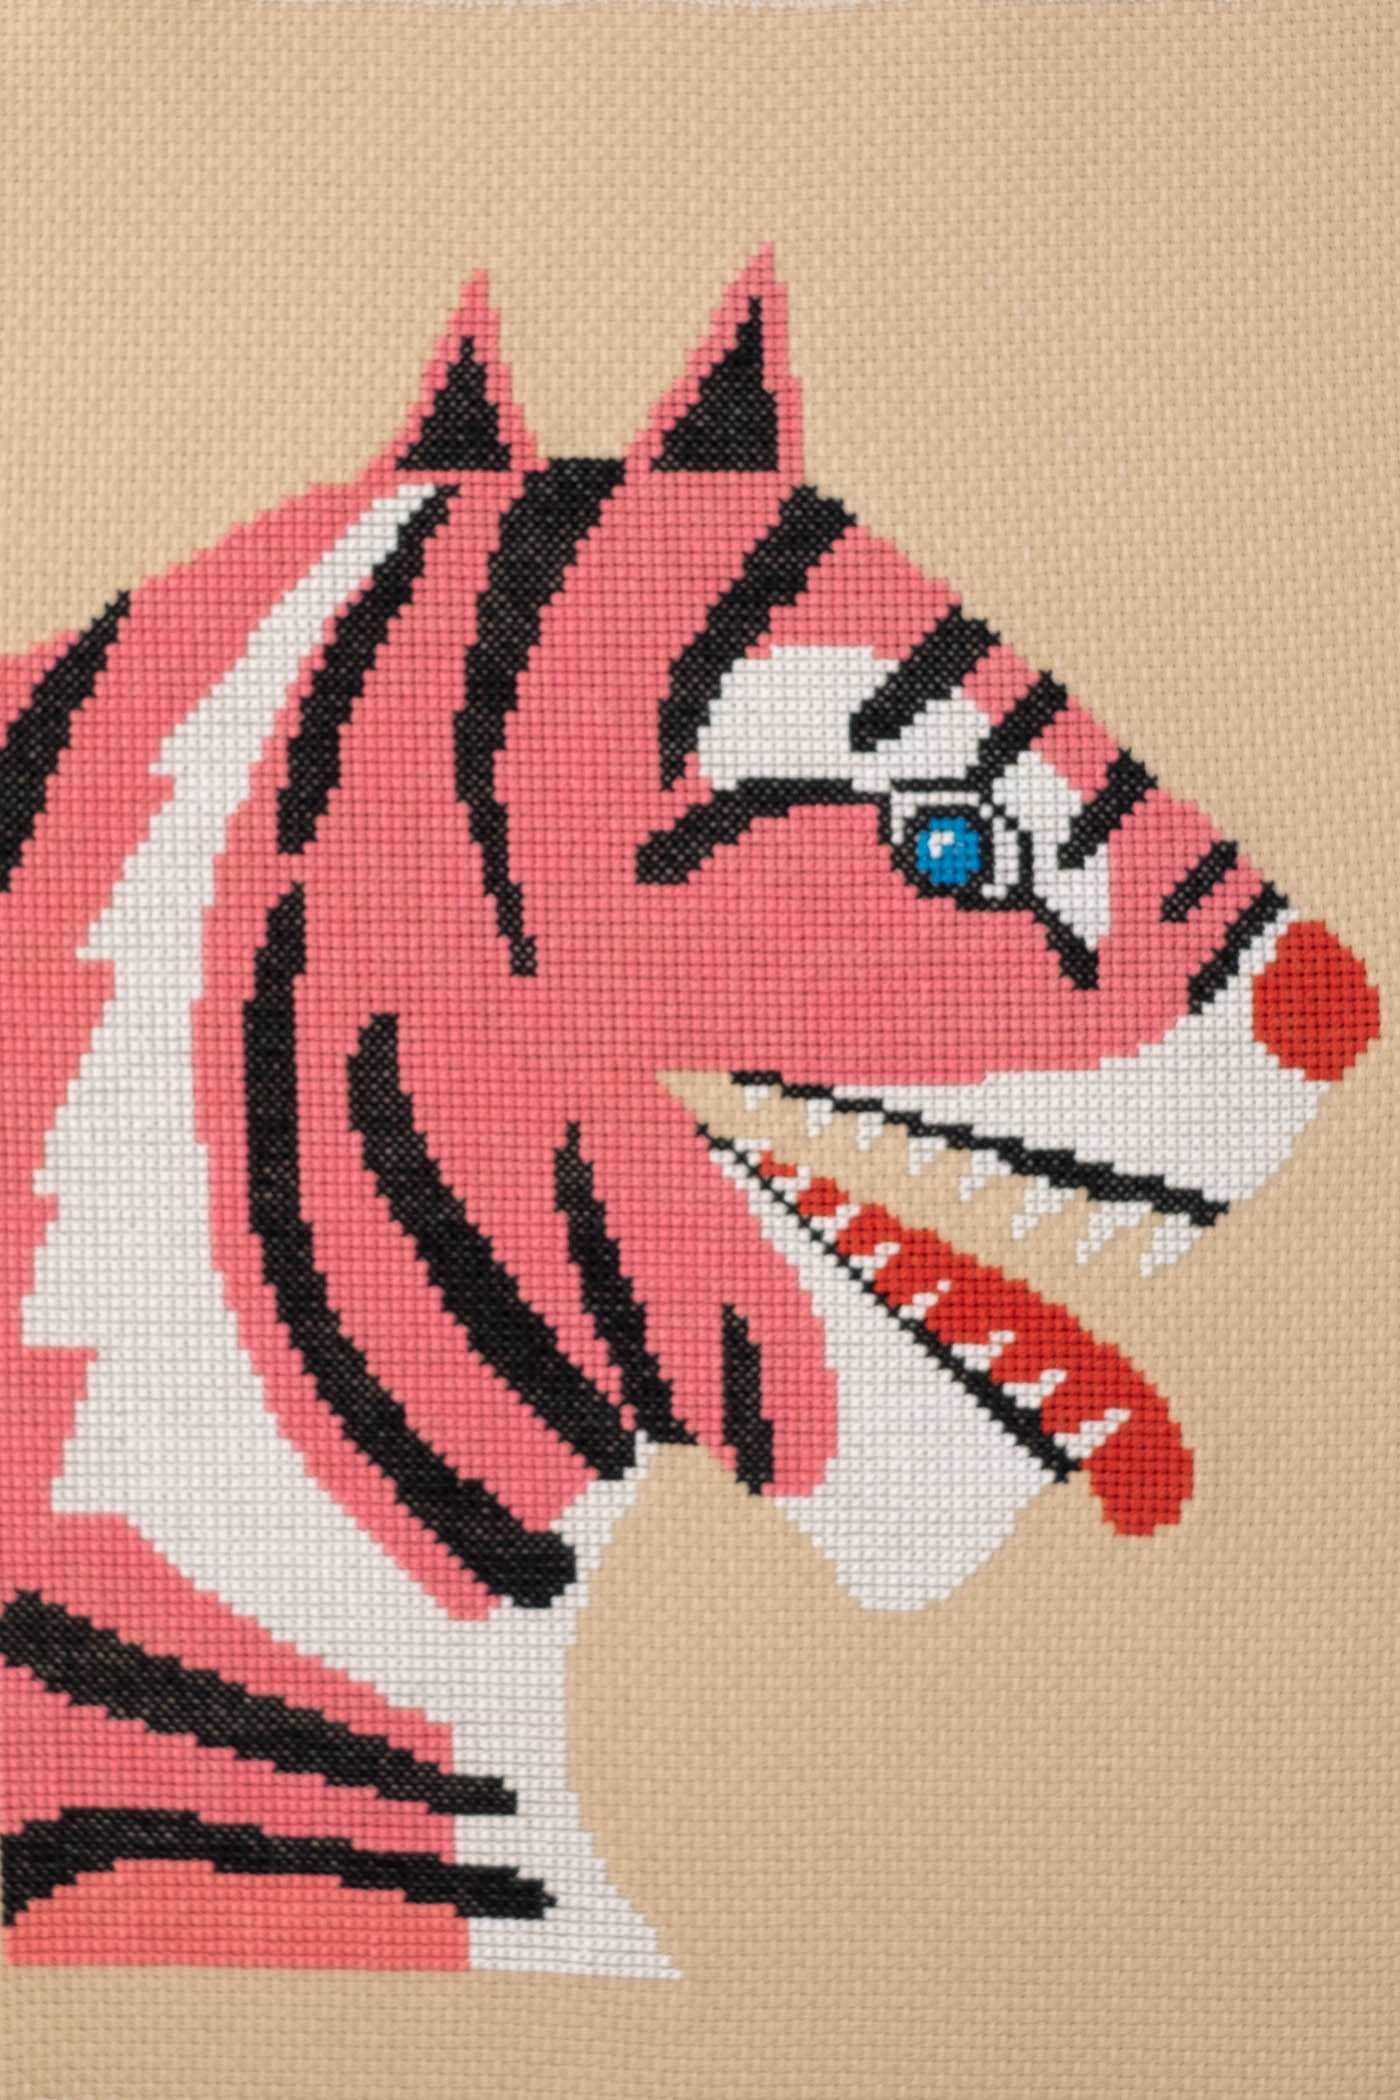 Lisa Congdon's Fangs Out Cross Stitch Kit of a tiger with blue eyes, red nose/tongue and striped in white, black and pink.